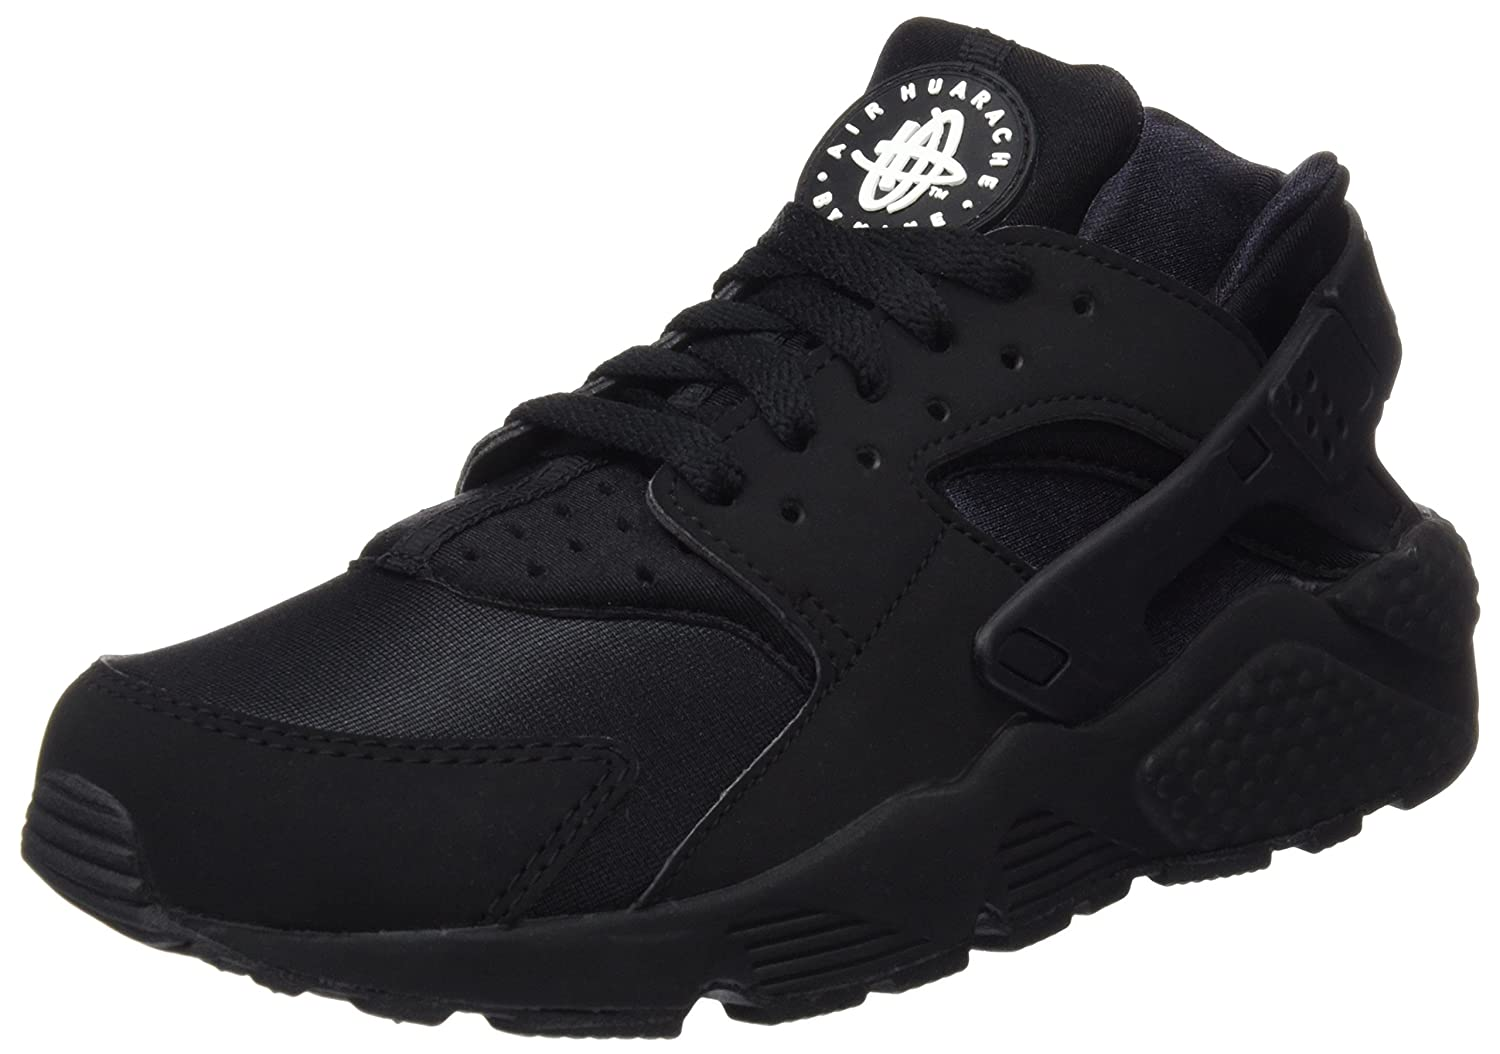 NIKE Men's Air Huarache Running Shoes B00LDZLFIW 9 D(M) US|Black/Black/White